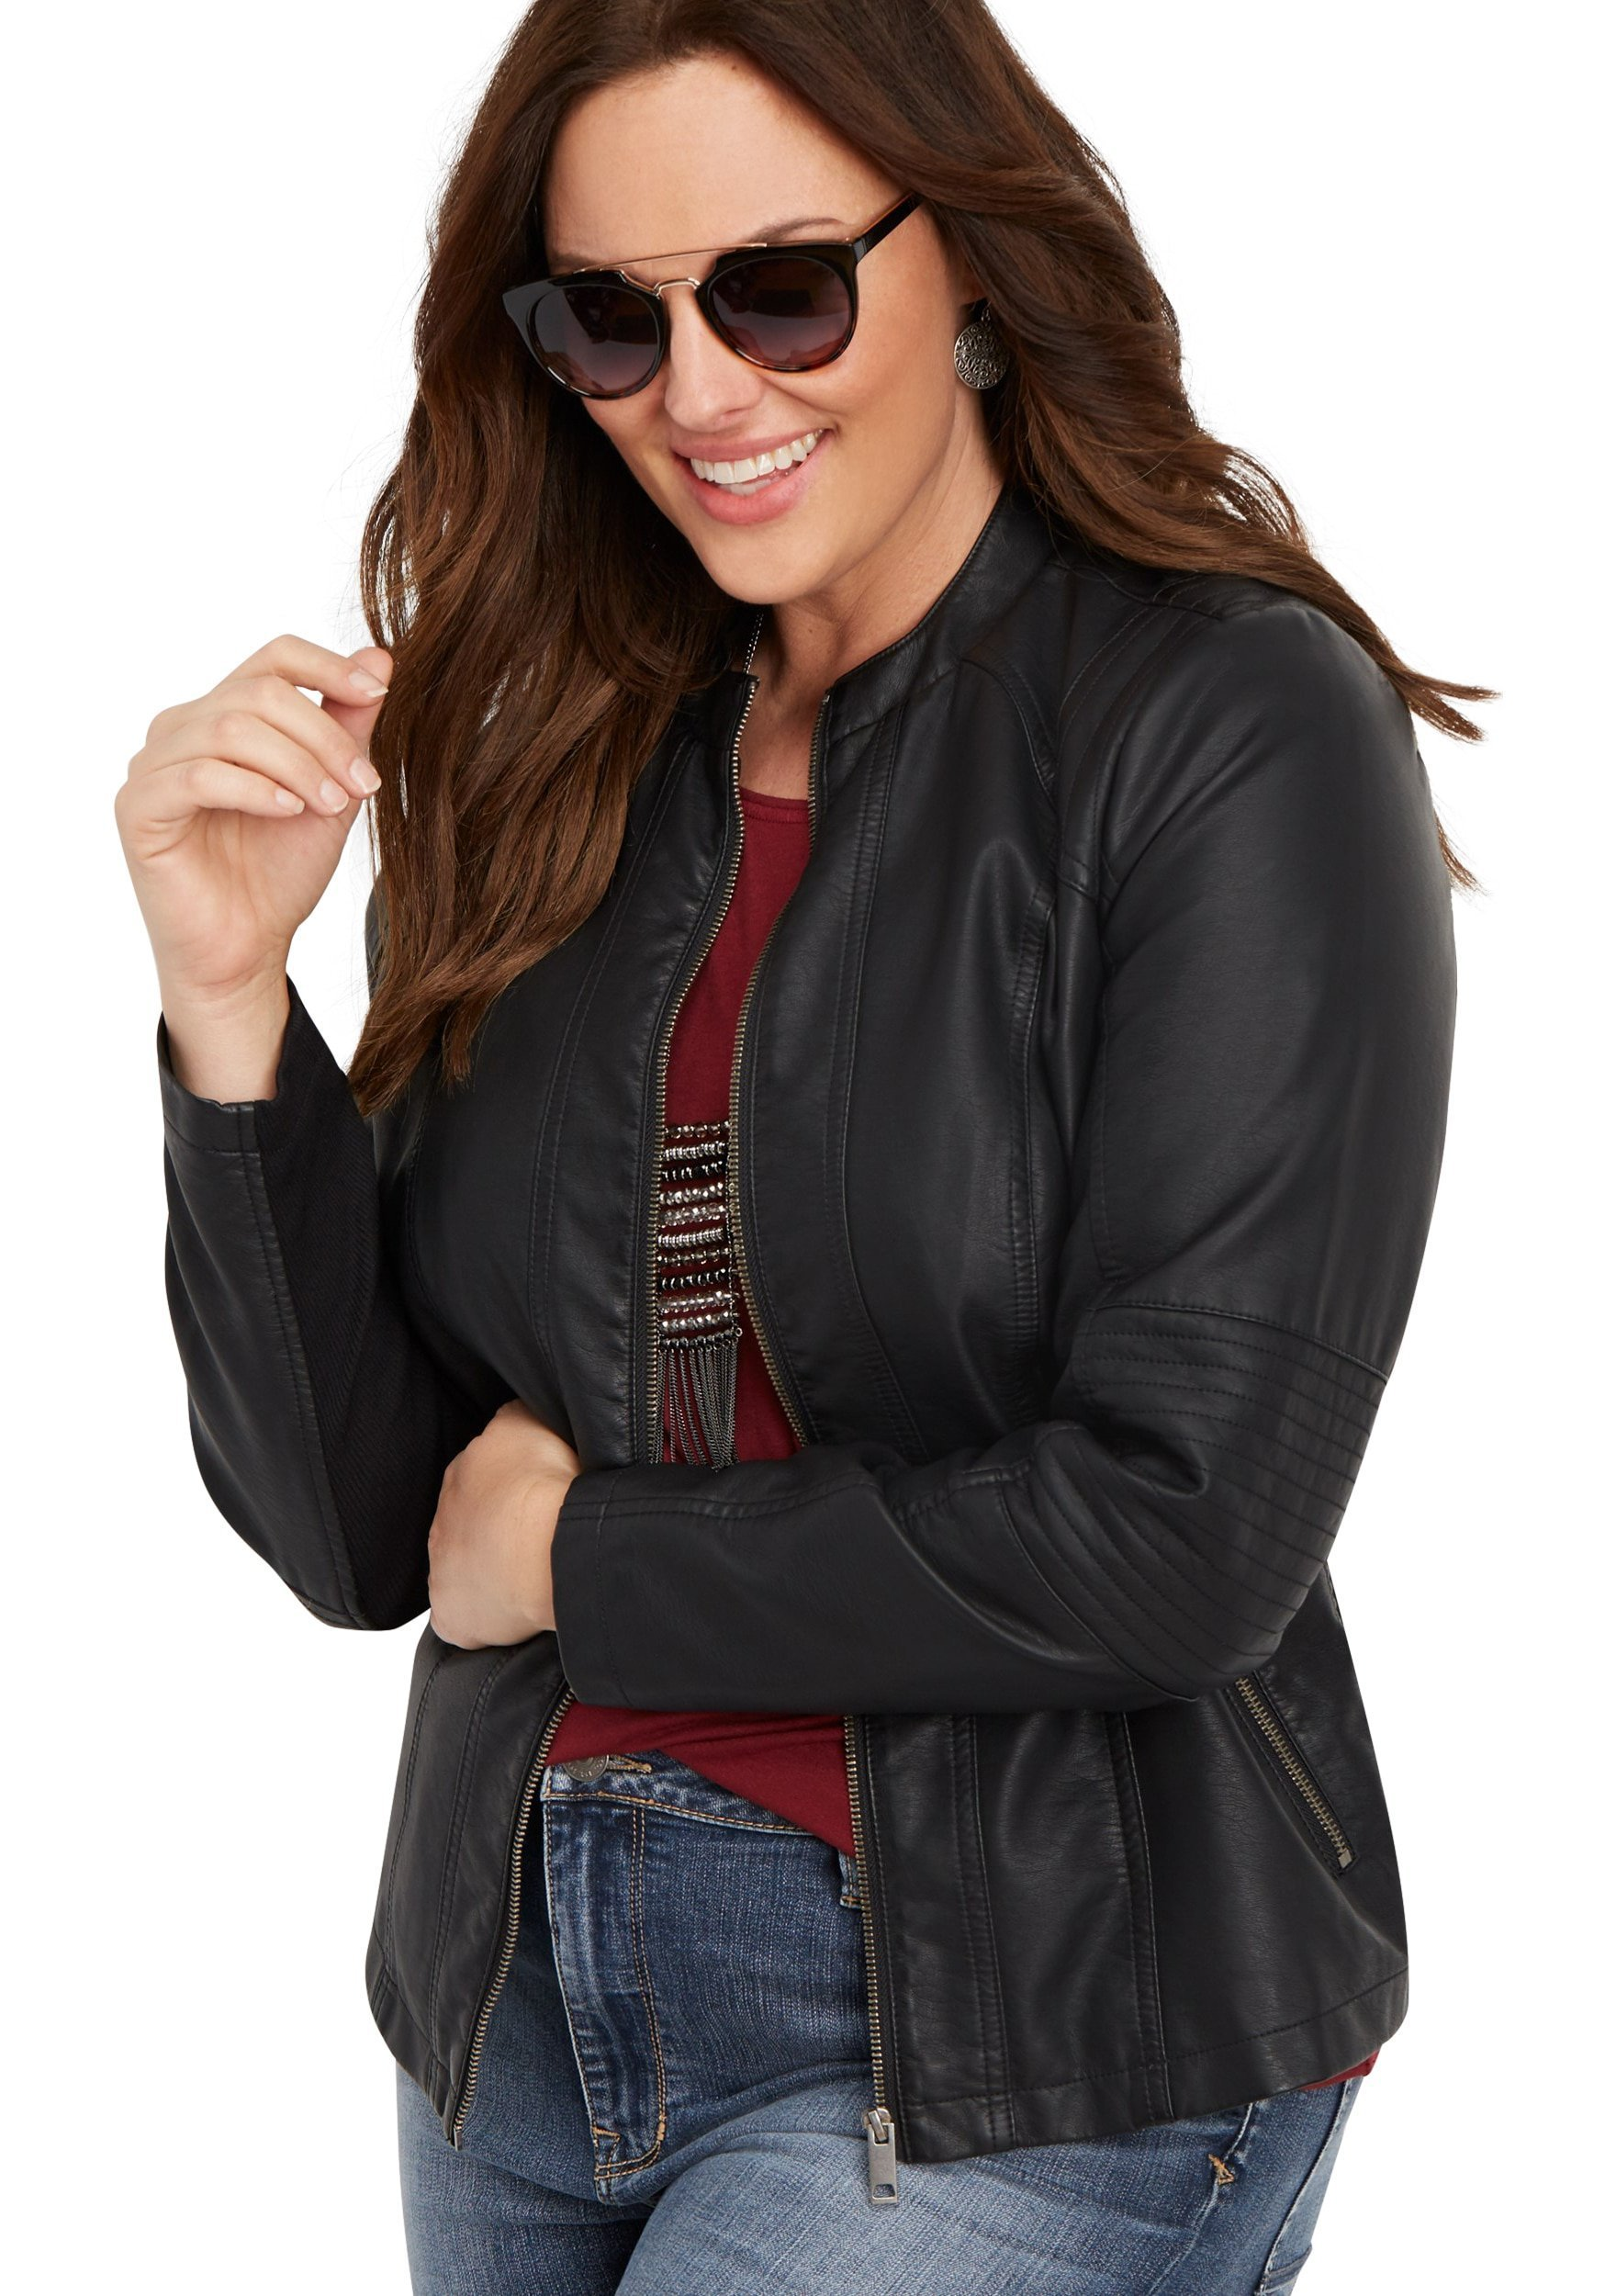 maurices Women's Plus Size Elbow Stitched Faux Leather Jacket 2 Black